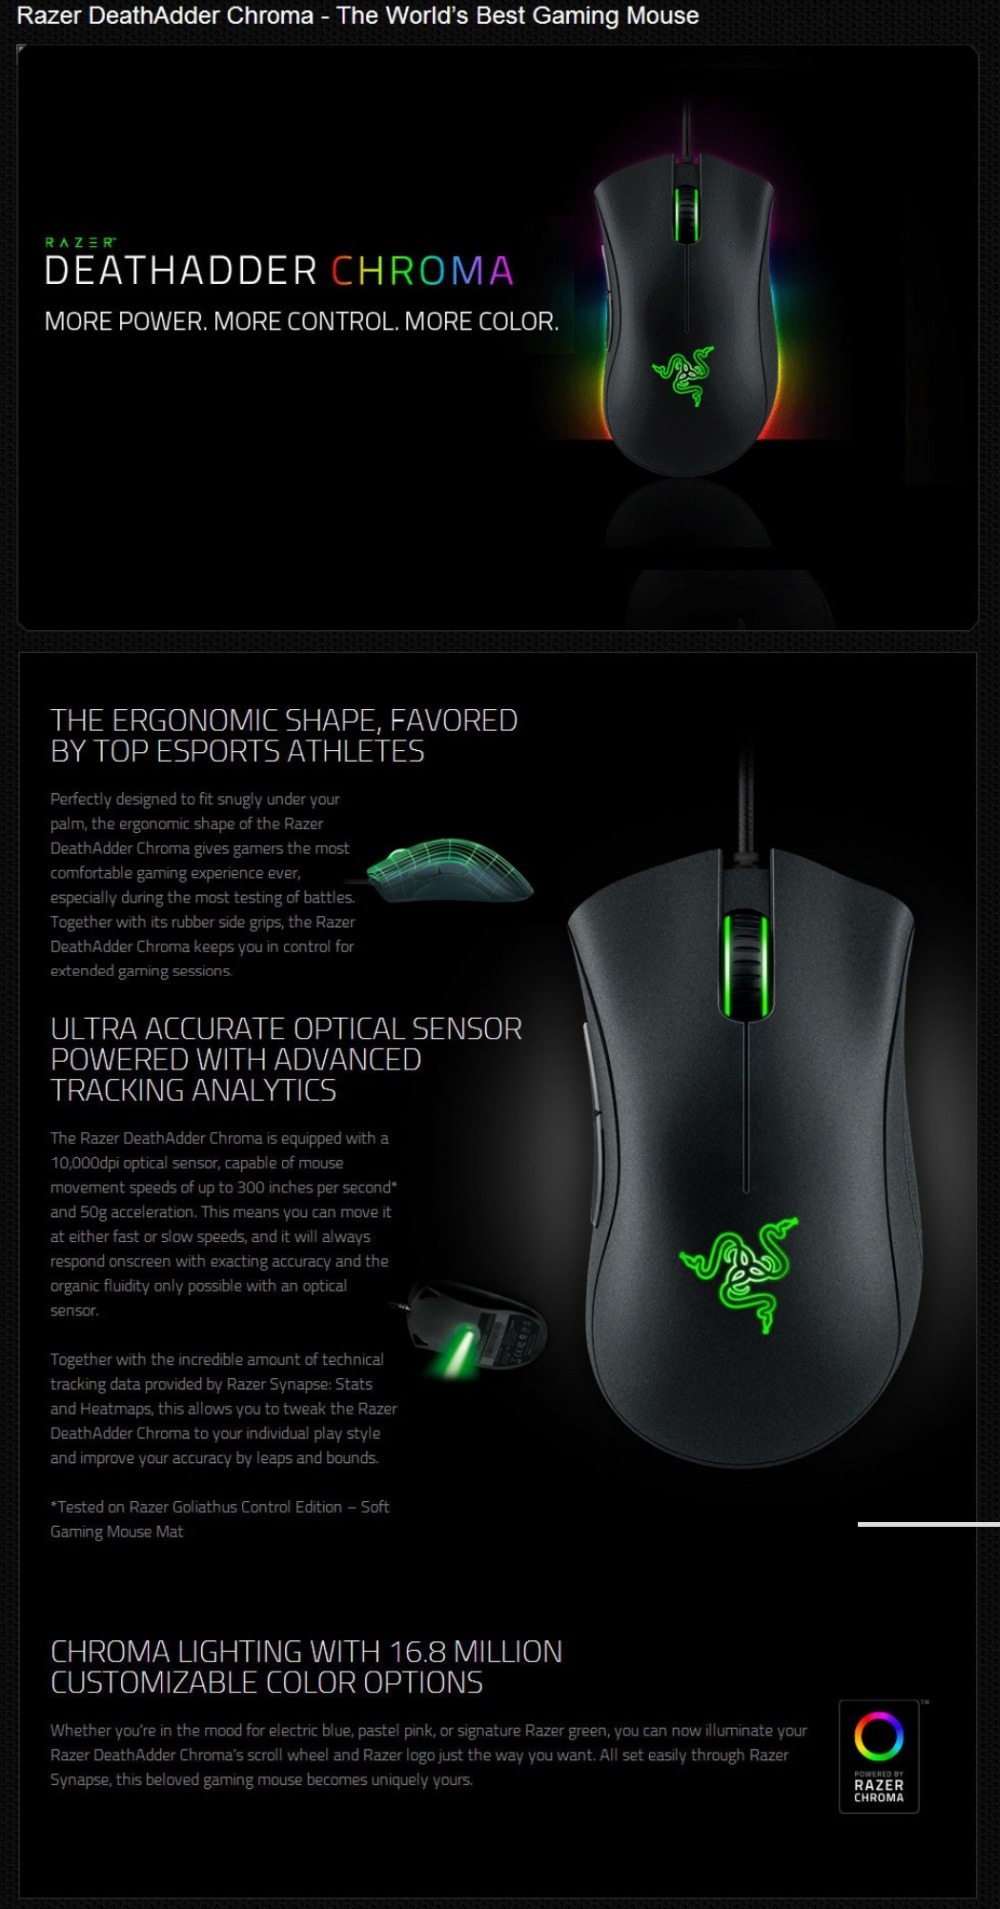 Razer Deathadder Expert 2013 Wired Gaming Mouse 4G Optical Sensor 6400 DPI  Programmable Thumb Hyperesponse Buttons Game Mouse